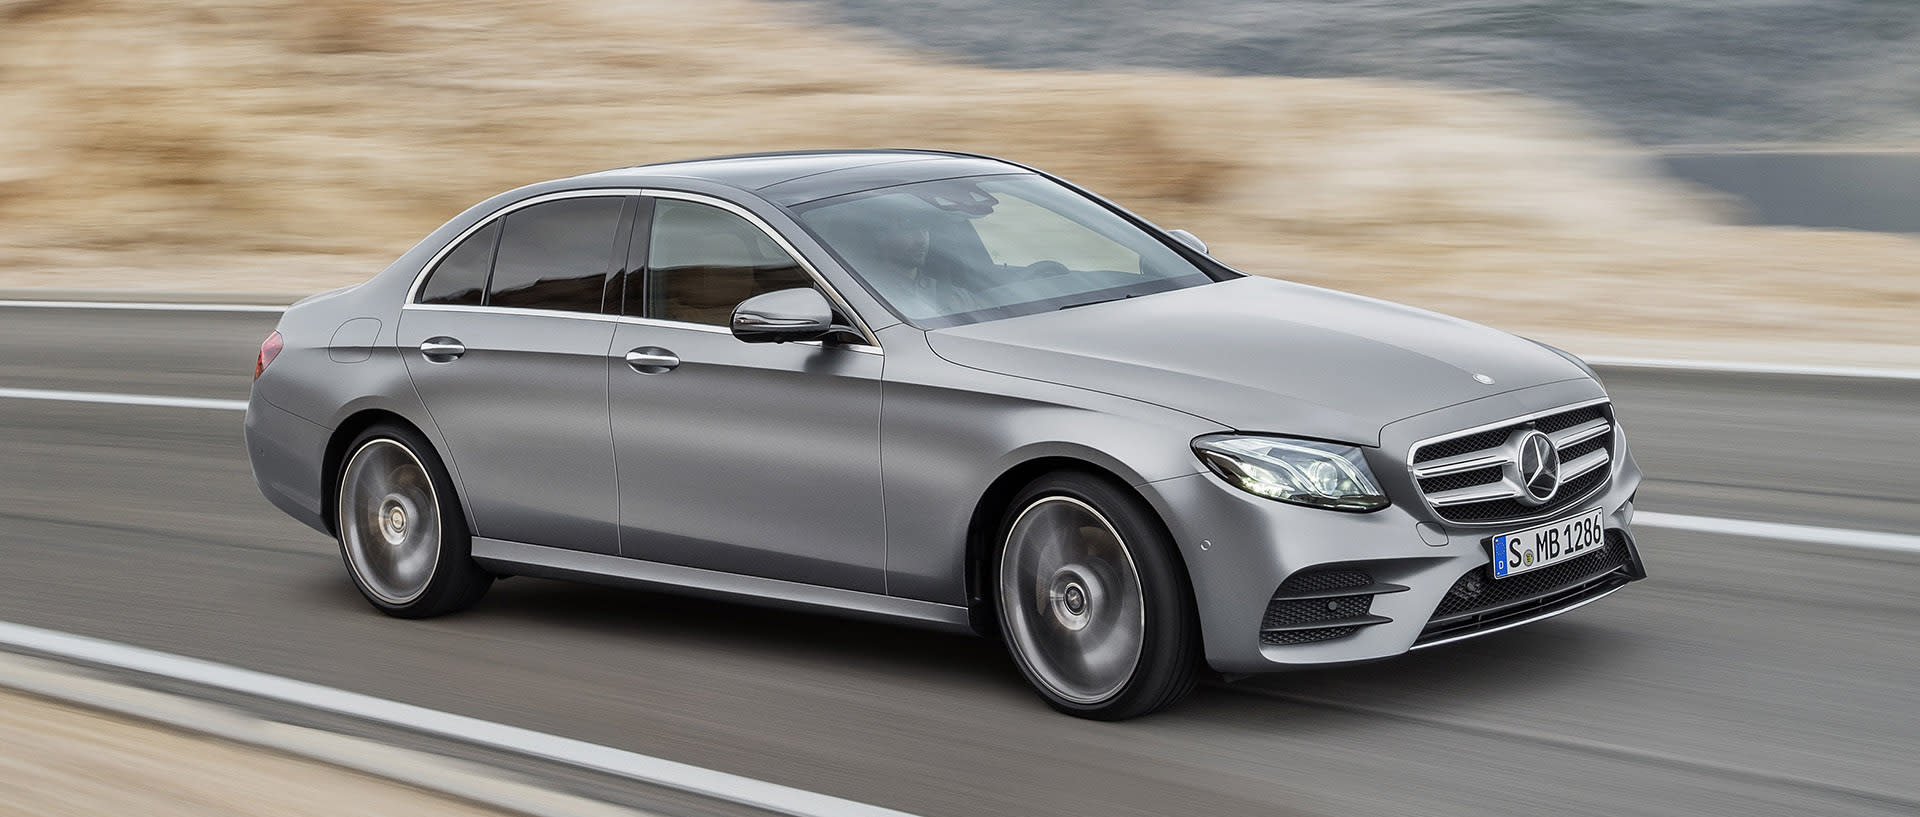 2017 mercedes benz e class grows larger and goes high tech for Mercedes benz c300 consumer reports